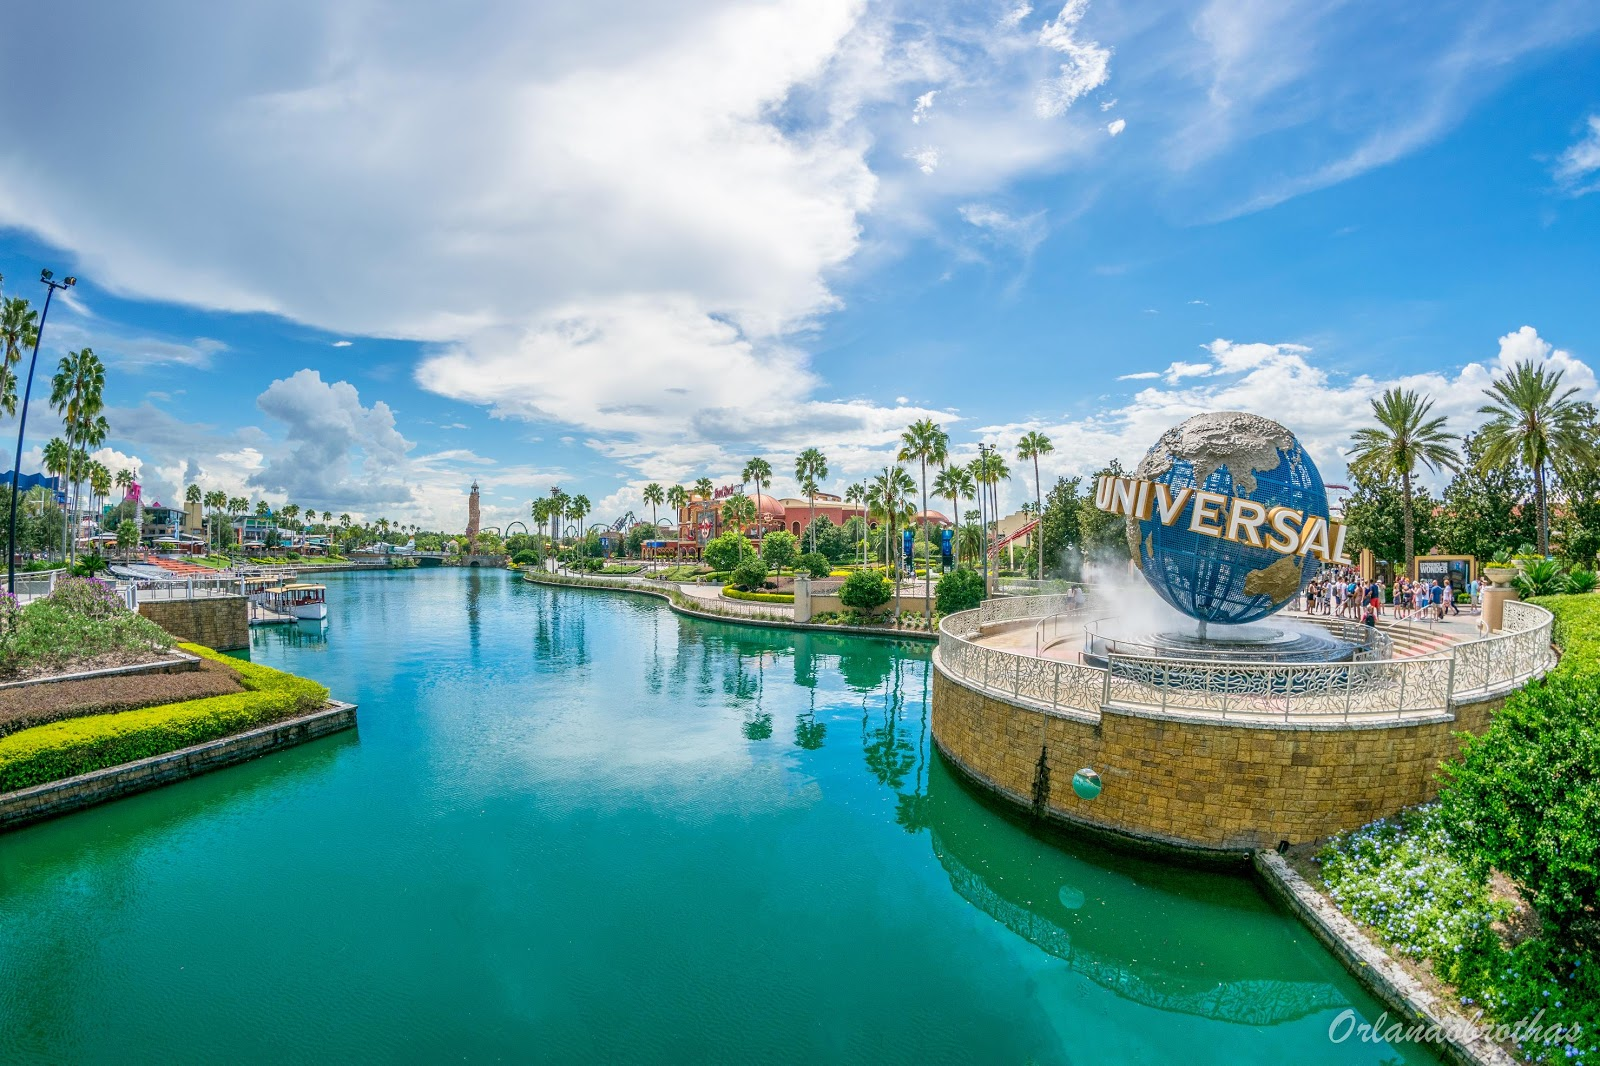 Top 4 Roller Coasters to Ride at Universal Orlando Resort™